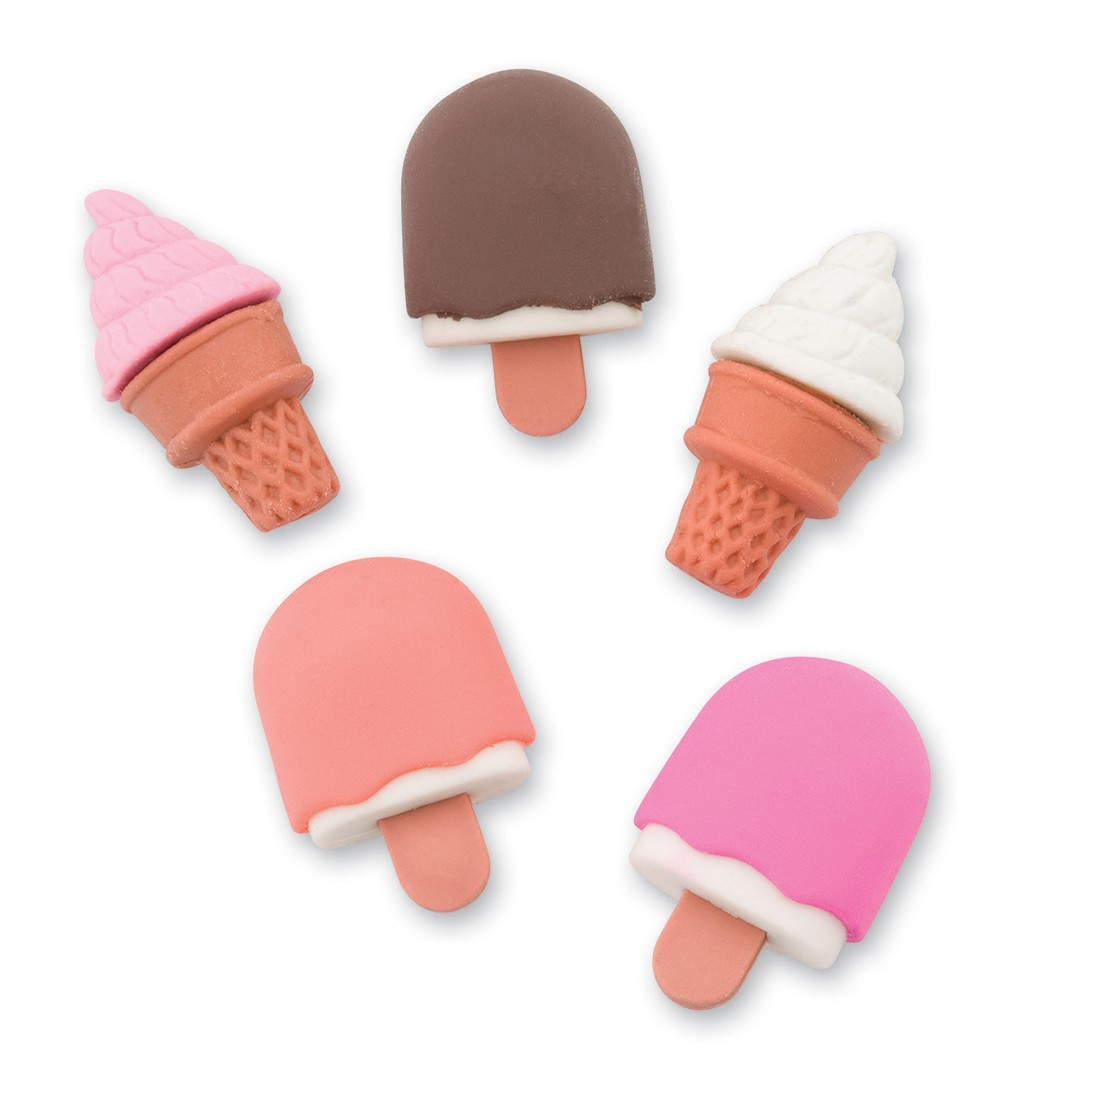 Ice Cream Erasers [image]